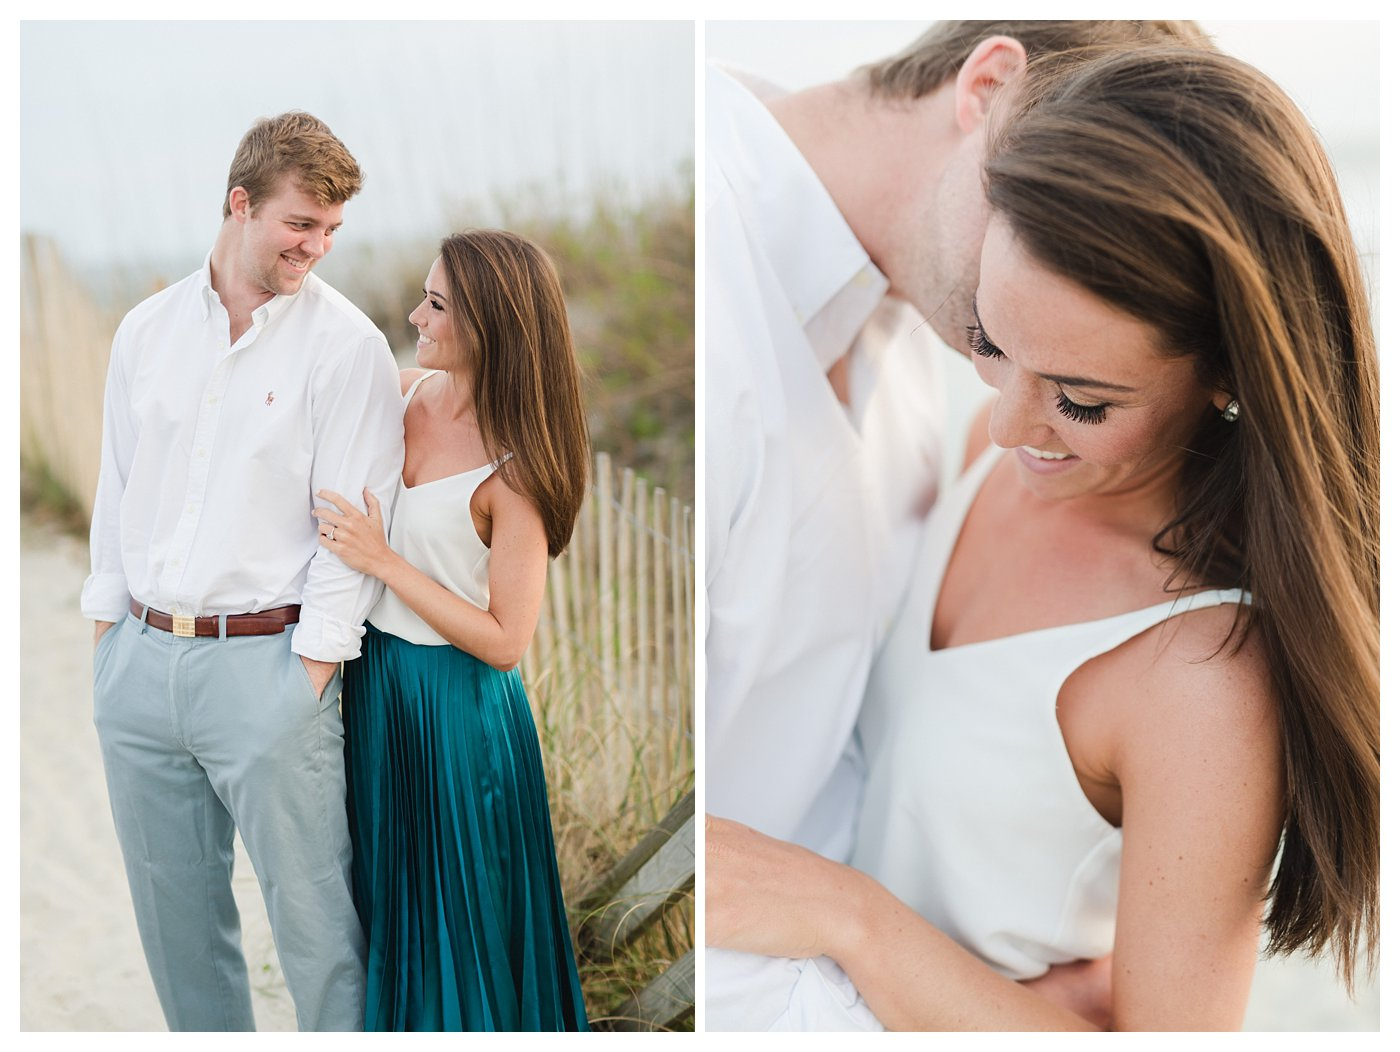 Ocean_Isle_NC_Beach_Coastal_Engagement_Session_Turqoise_White_Candlelit_0007.jpg